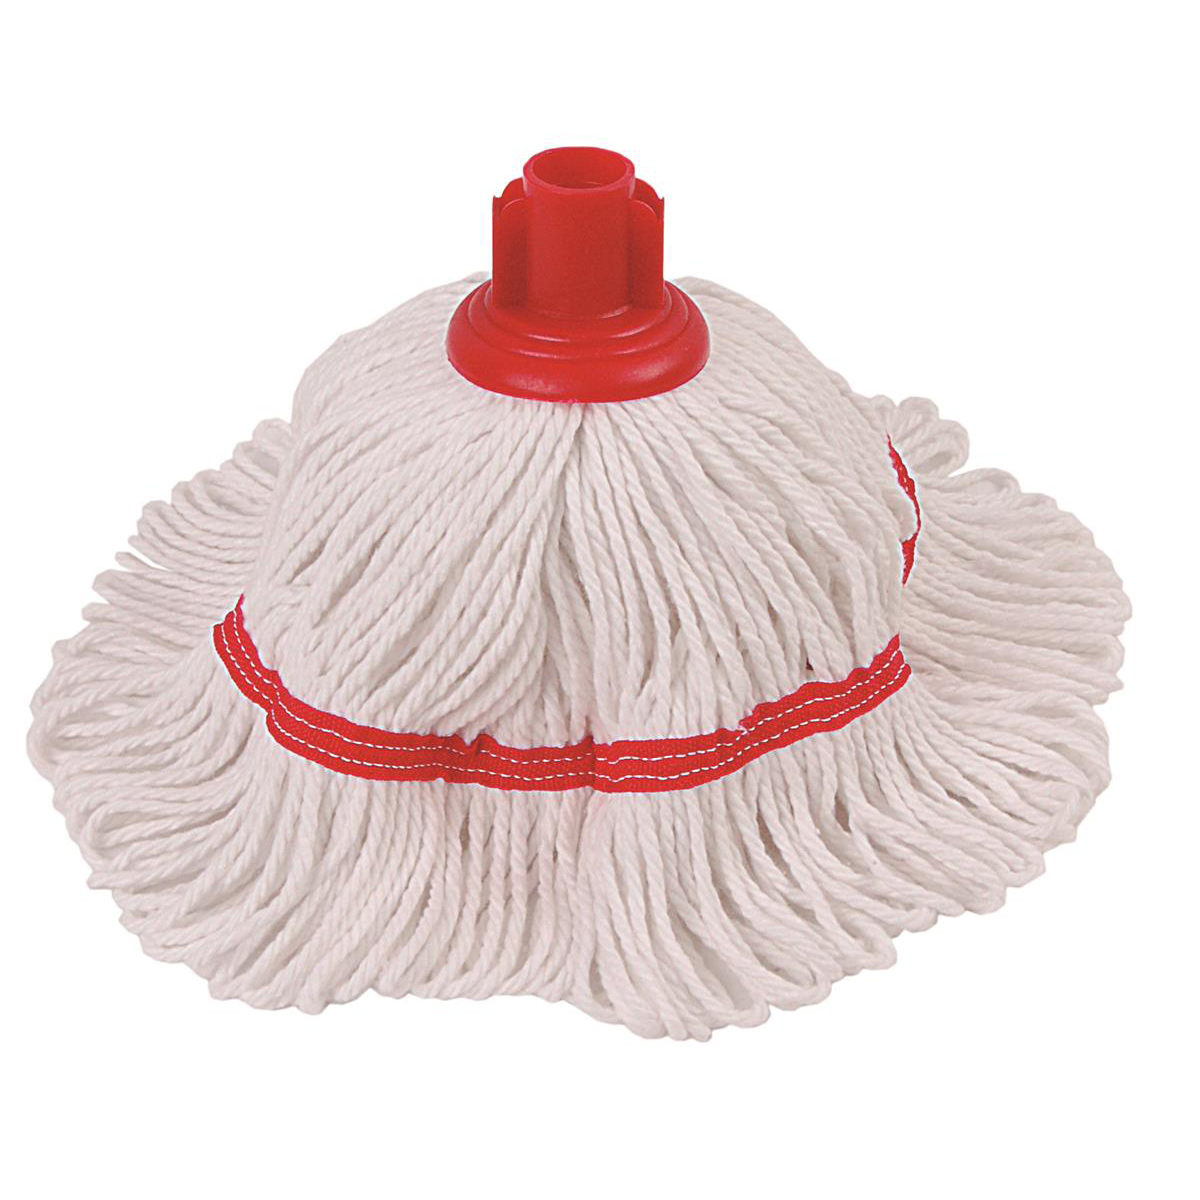 Mops & Buckets Robert Scott & Sons Hygiemix T1 Socket Cotton & Synthetic Colour-coded Mop 200g Red Ref MHH200R